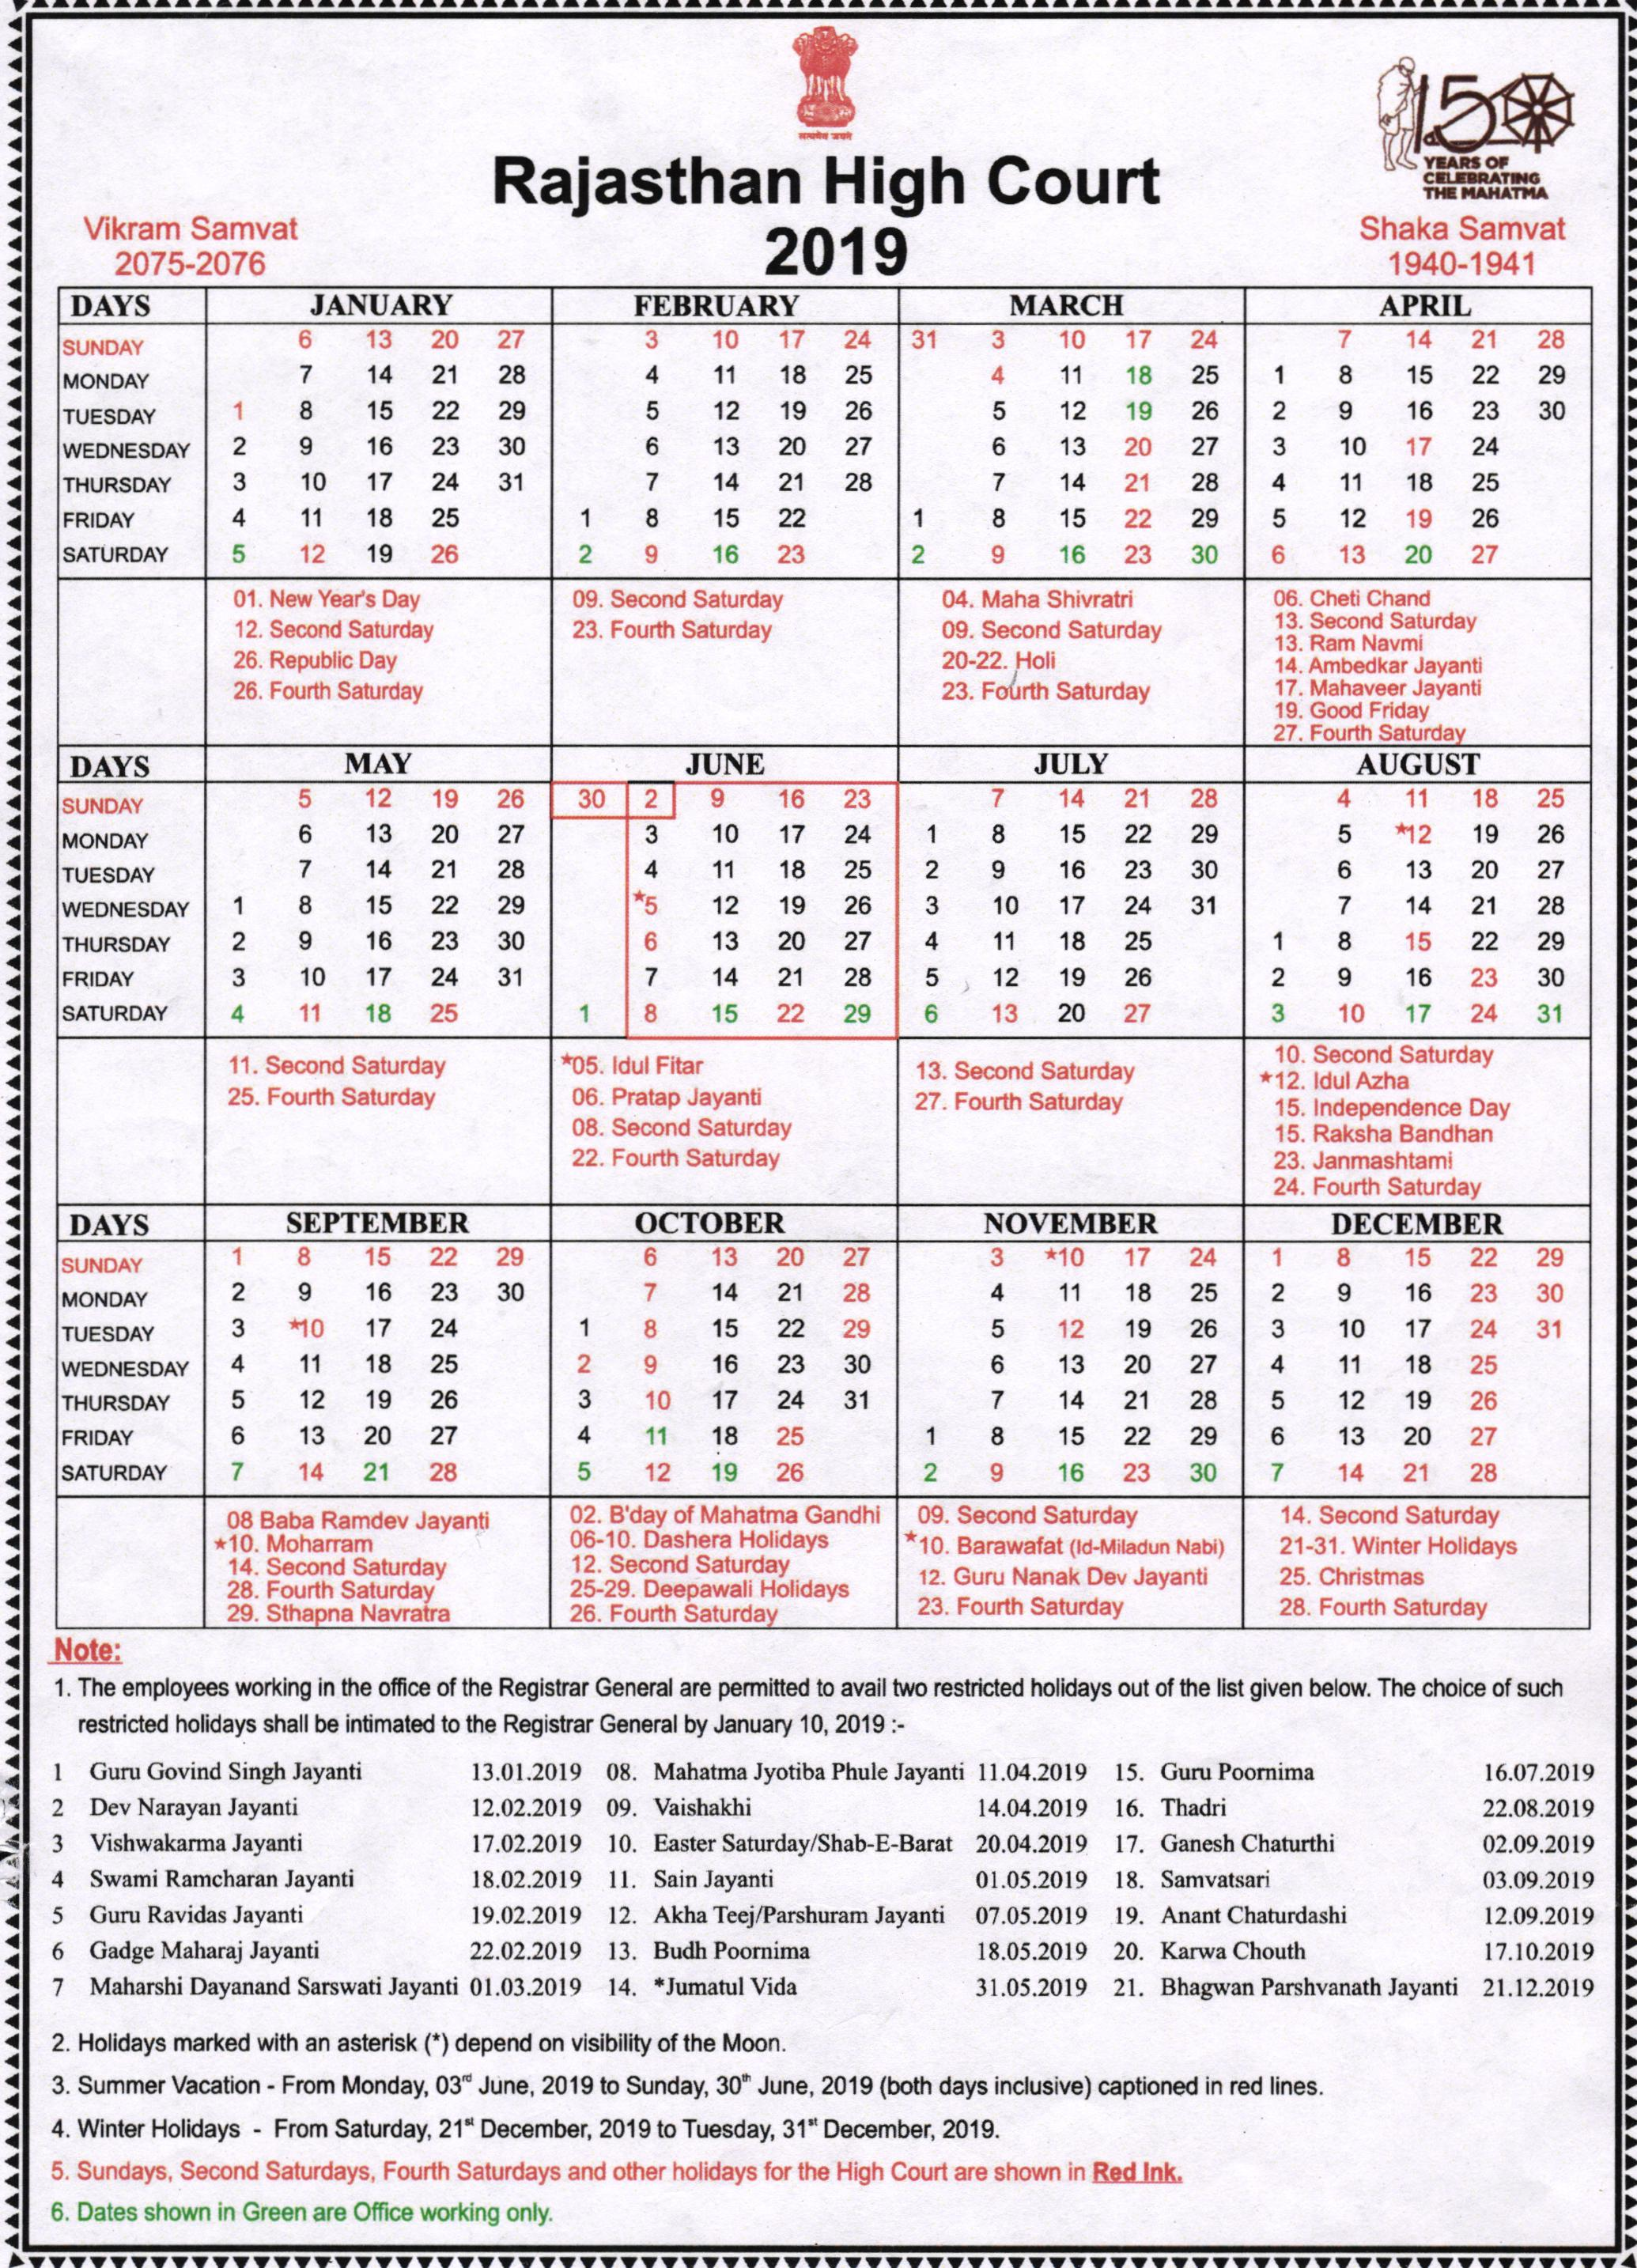 Supreme Court Calendar 2020 Rajasthan High Court Calendar 2019 | Latest laws